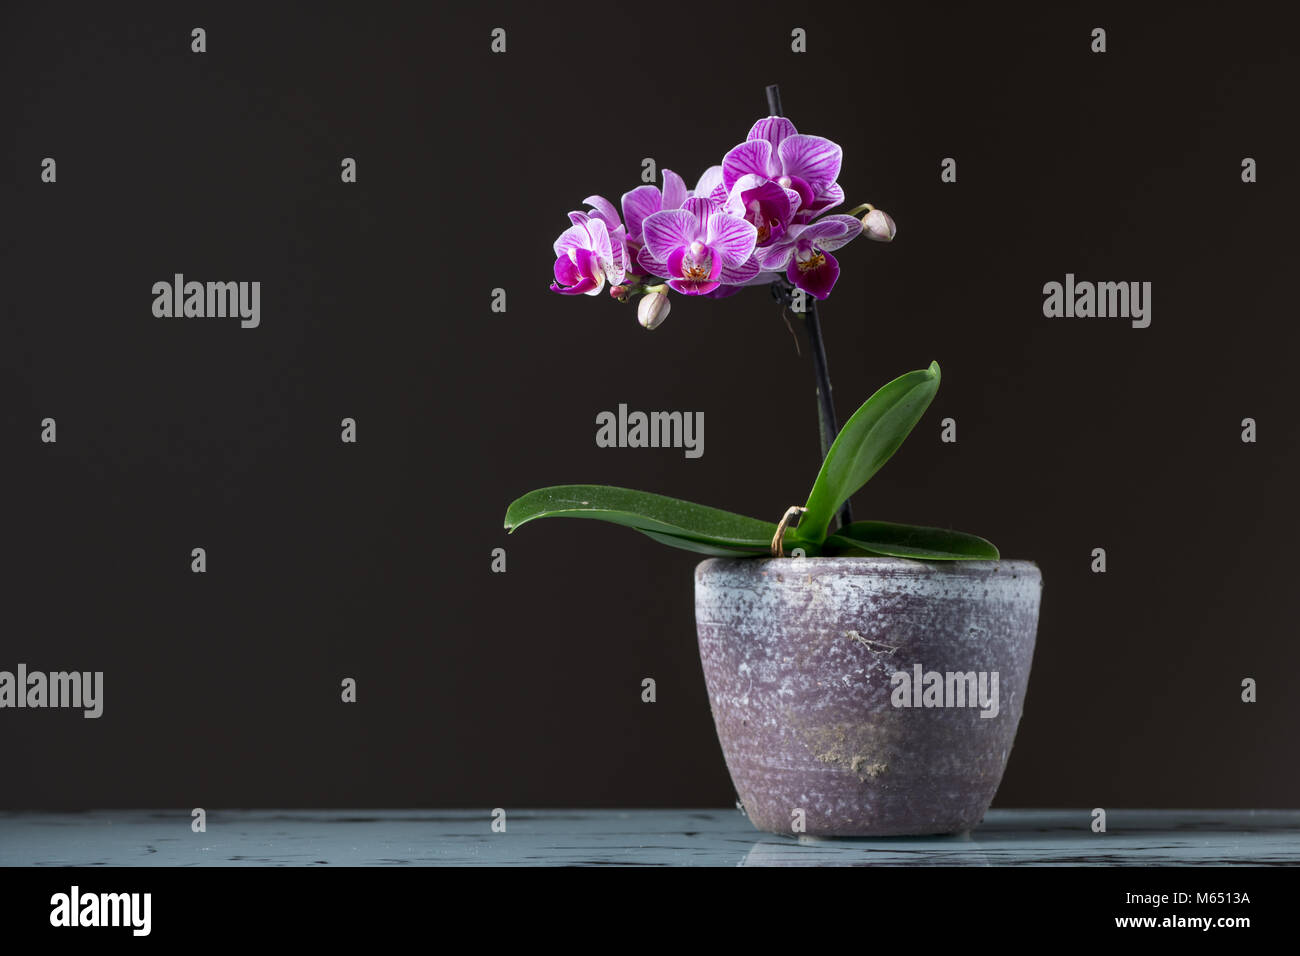 Small pink orchid phalaenopsis in a flower pot dark background small pink orchid phalaenopsis in a flower pot dark background mightylinksfo